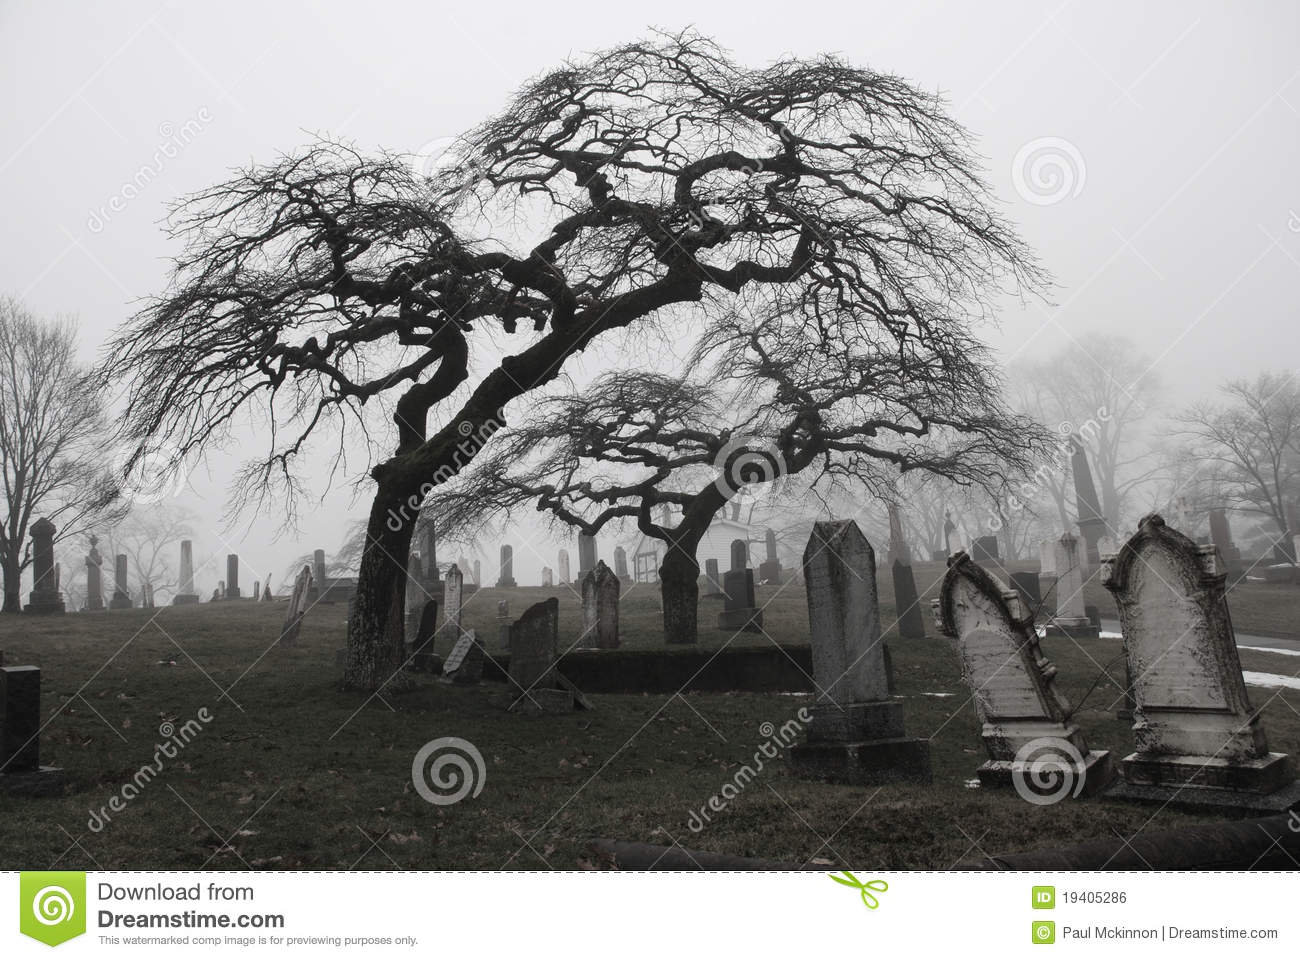 Spooky Graveyard Scene With Scary Trees A Stock Photo ...